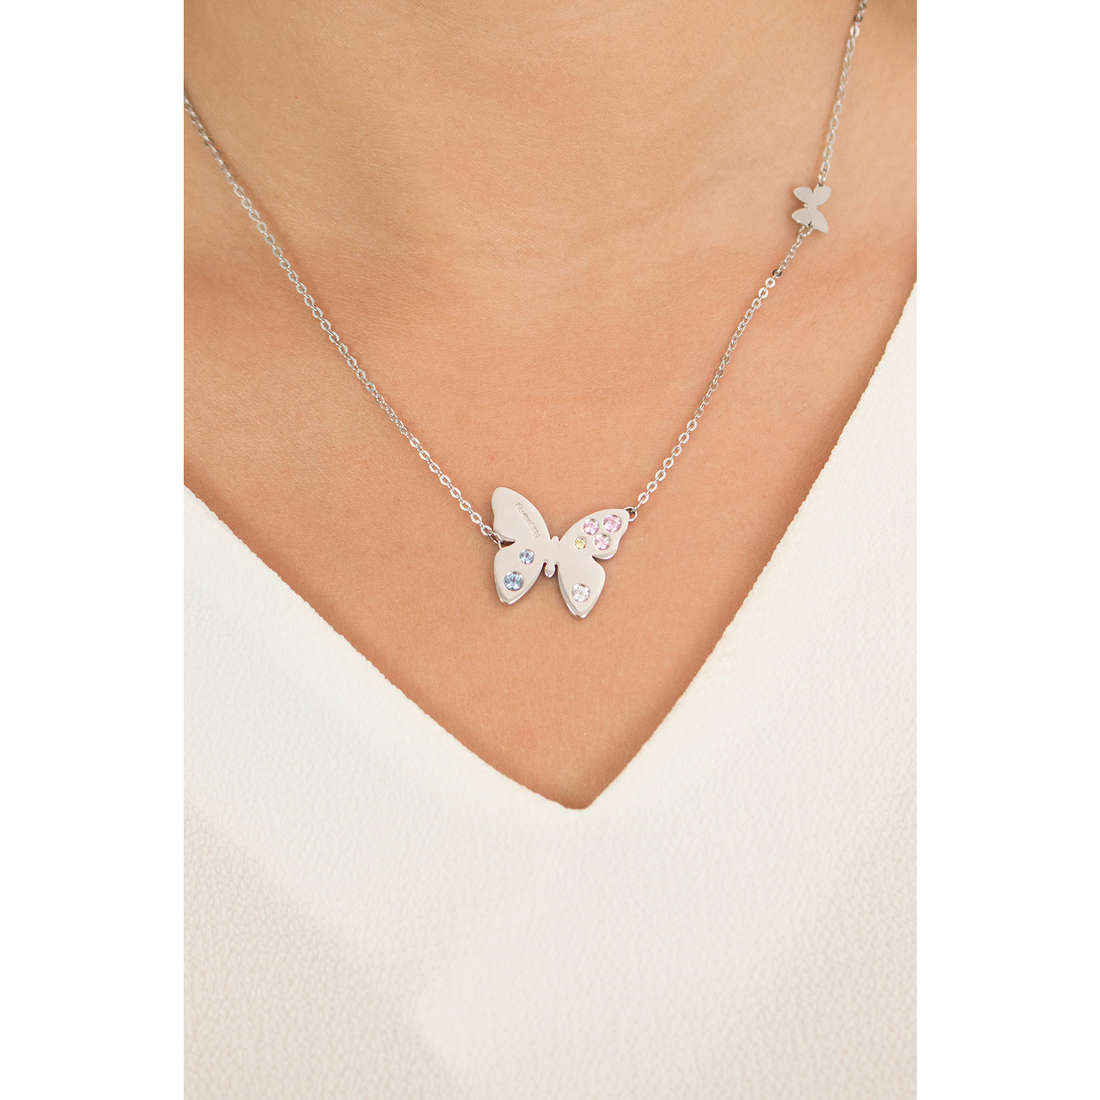 Nomination colliers Butterfly femme 021320/005 photo wearing